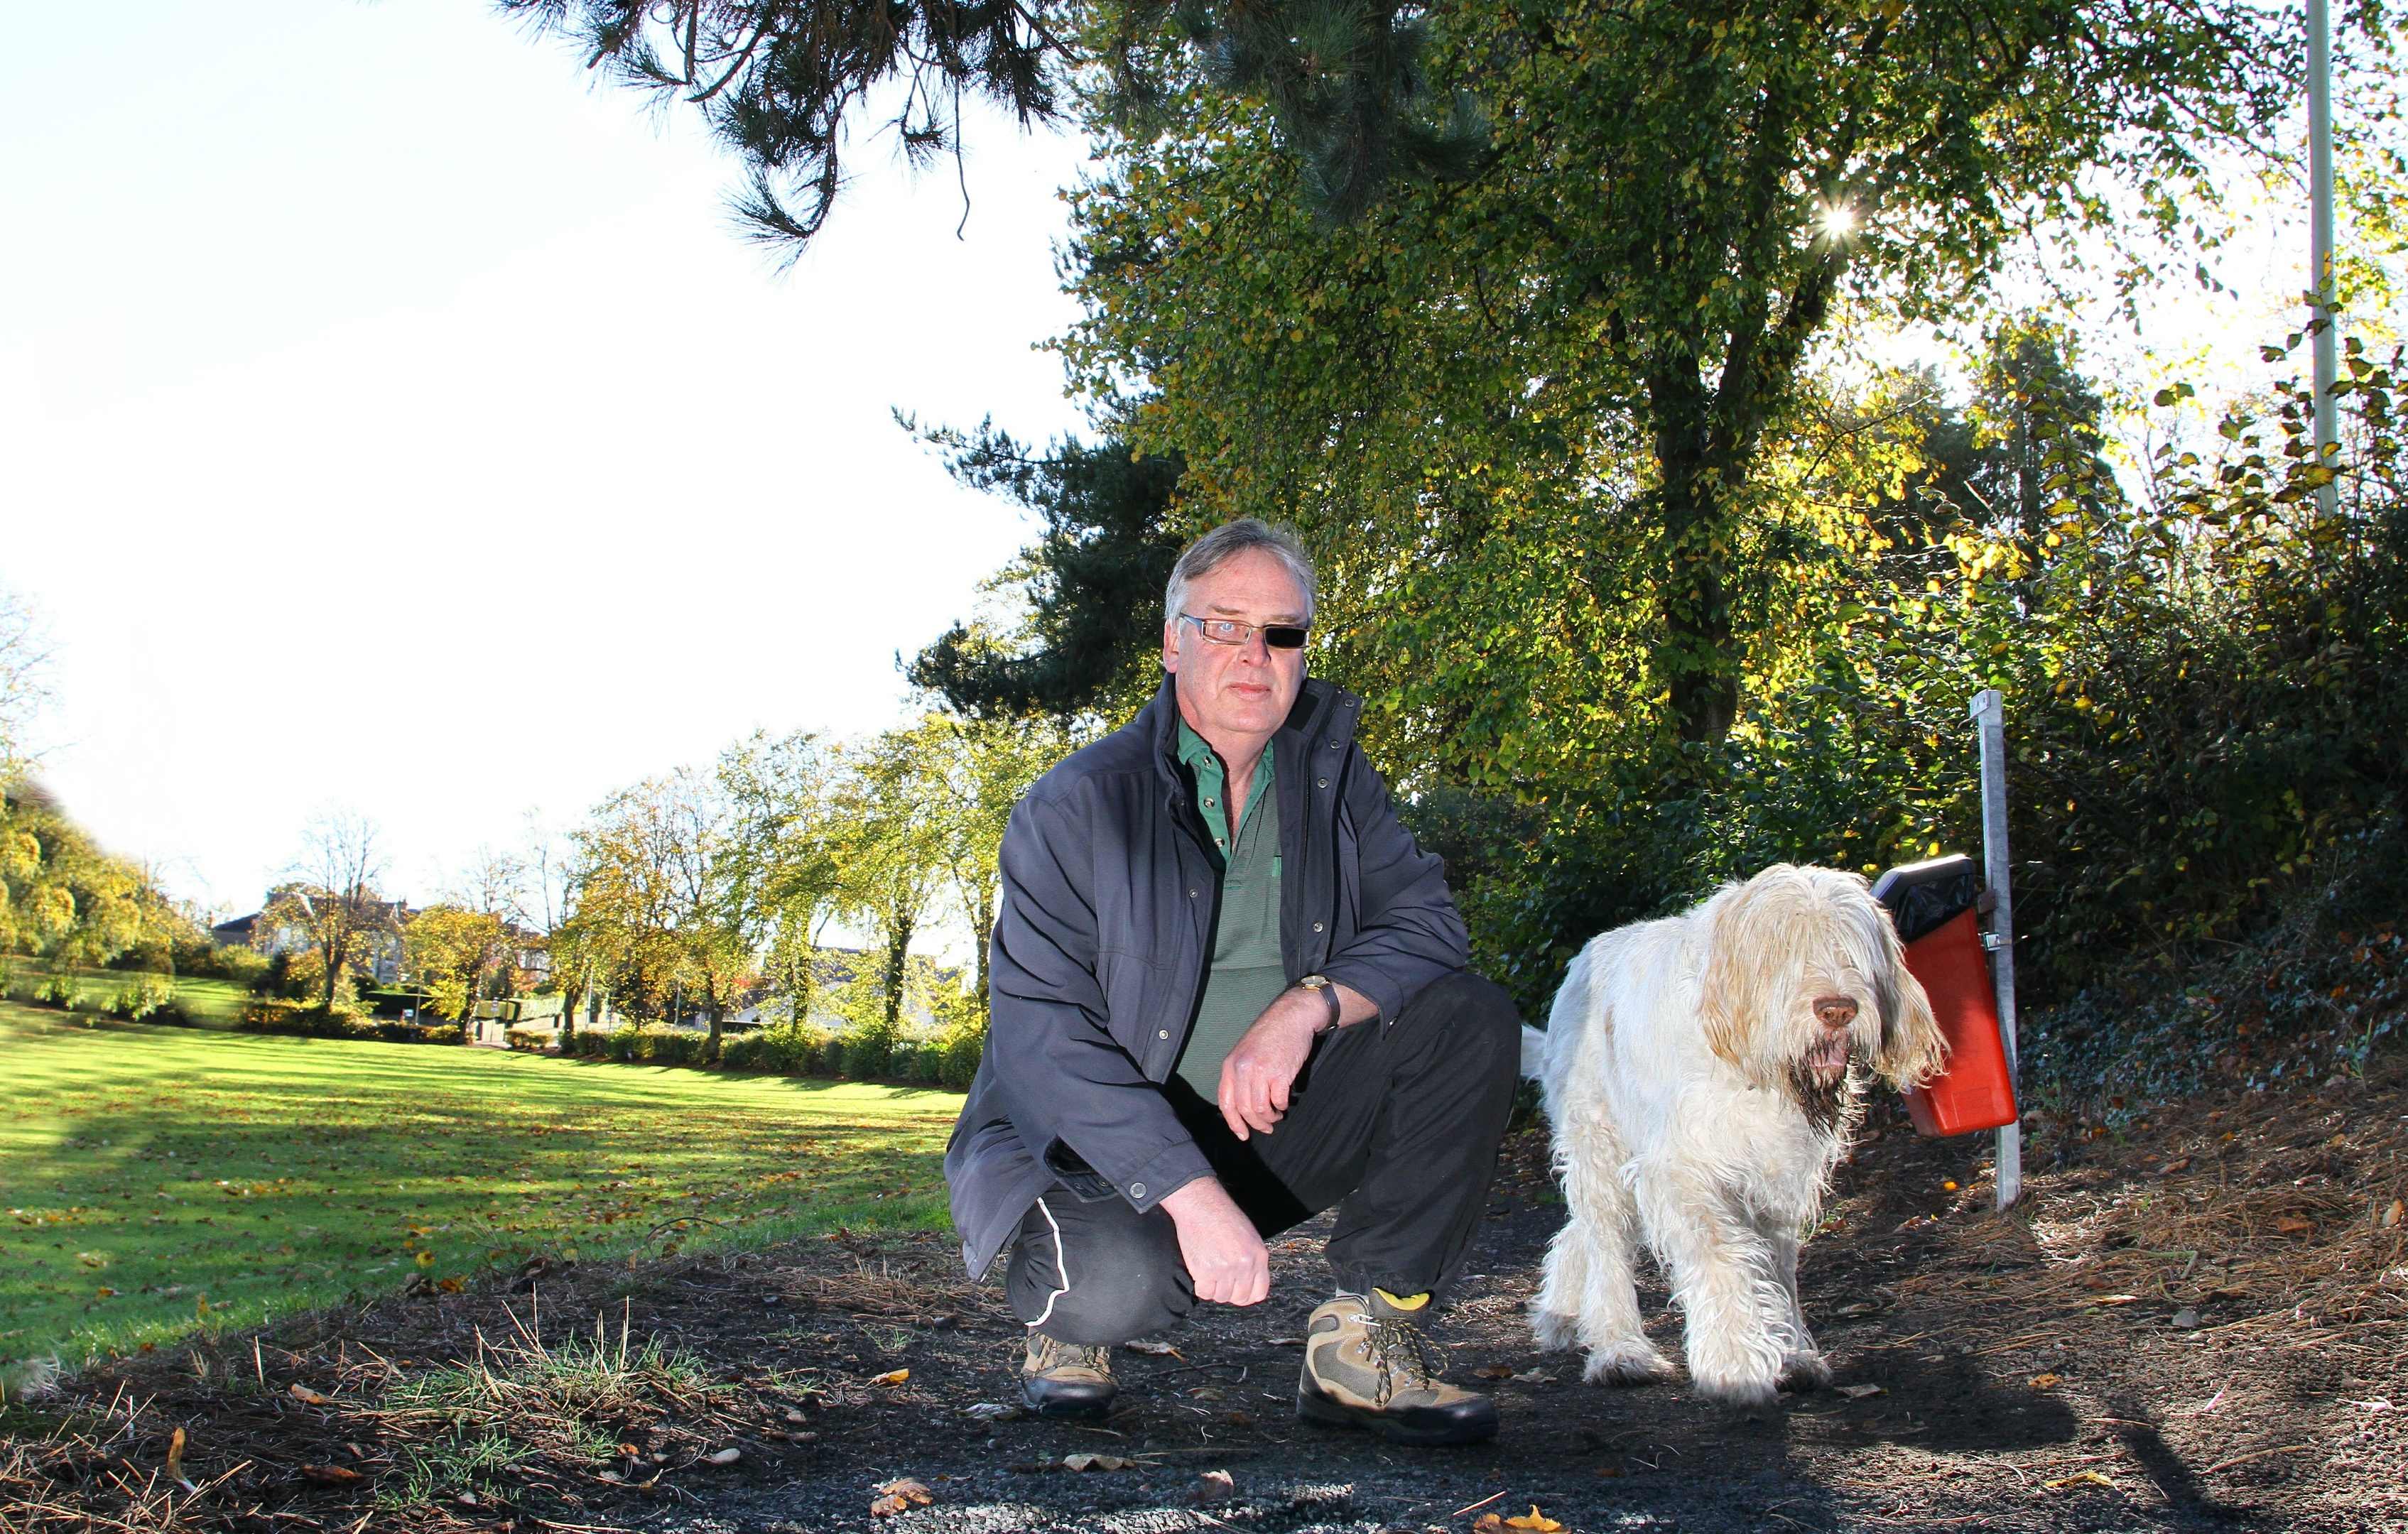 Peter Anderson with his dog.